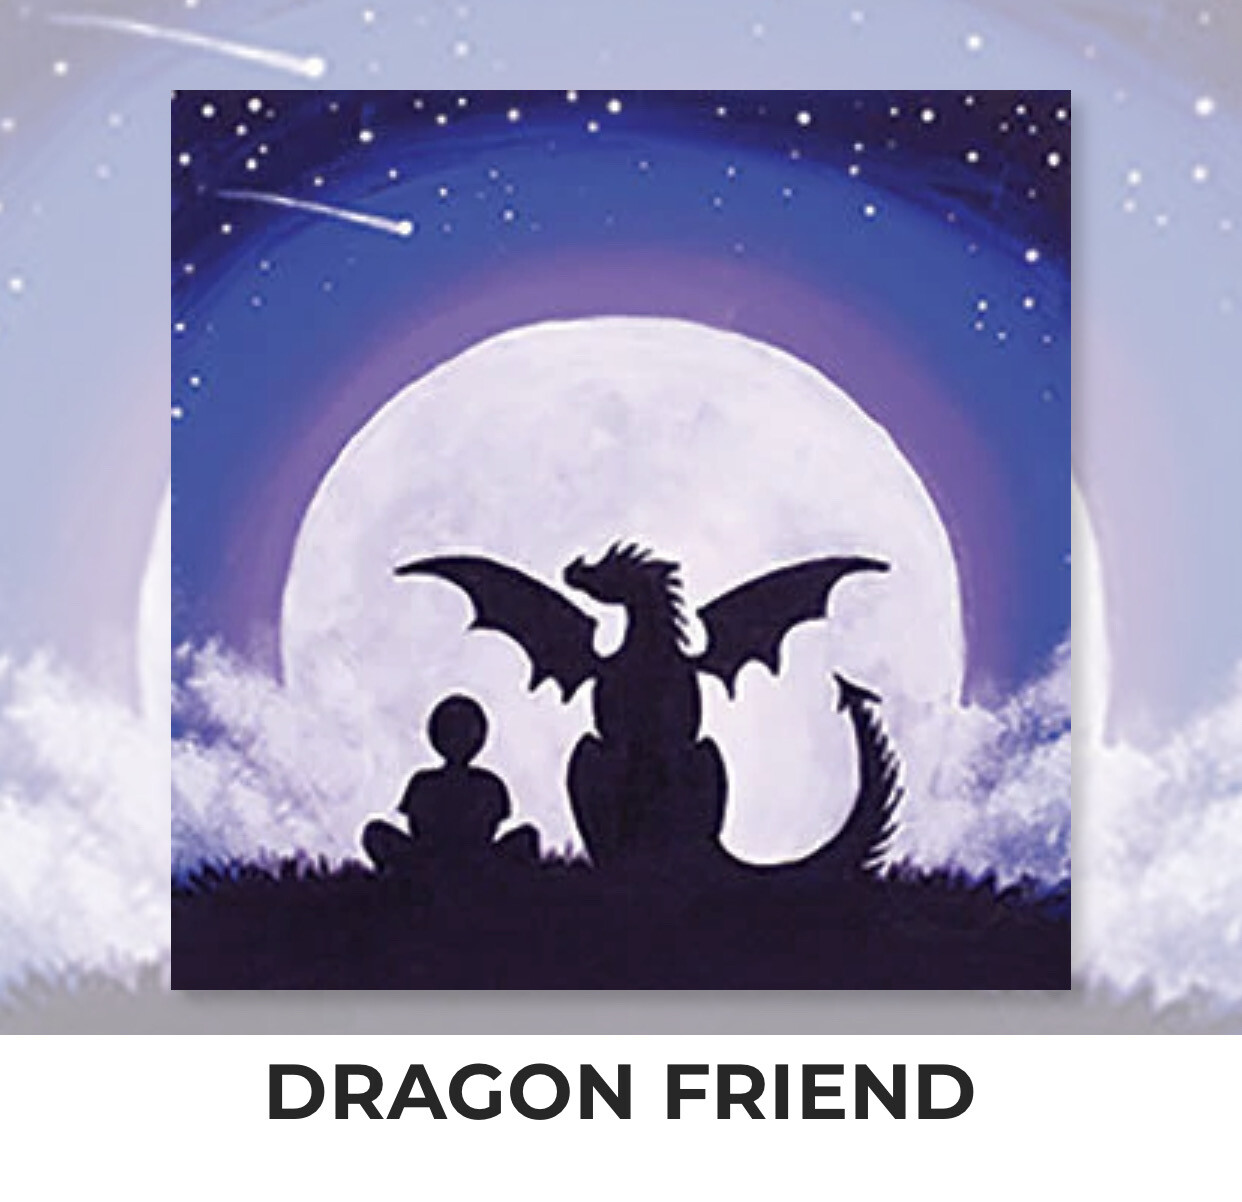 Dragon Friend KIDS Acrylic Paint On Canvas DIY Art Kit